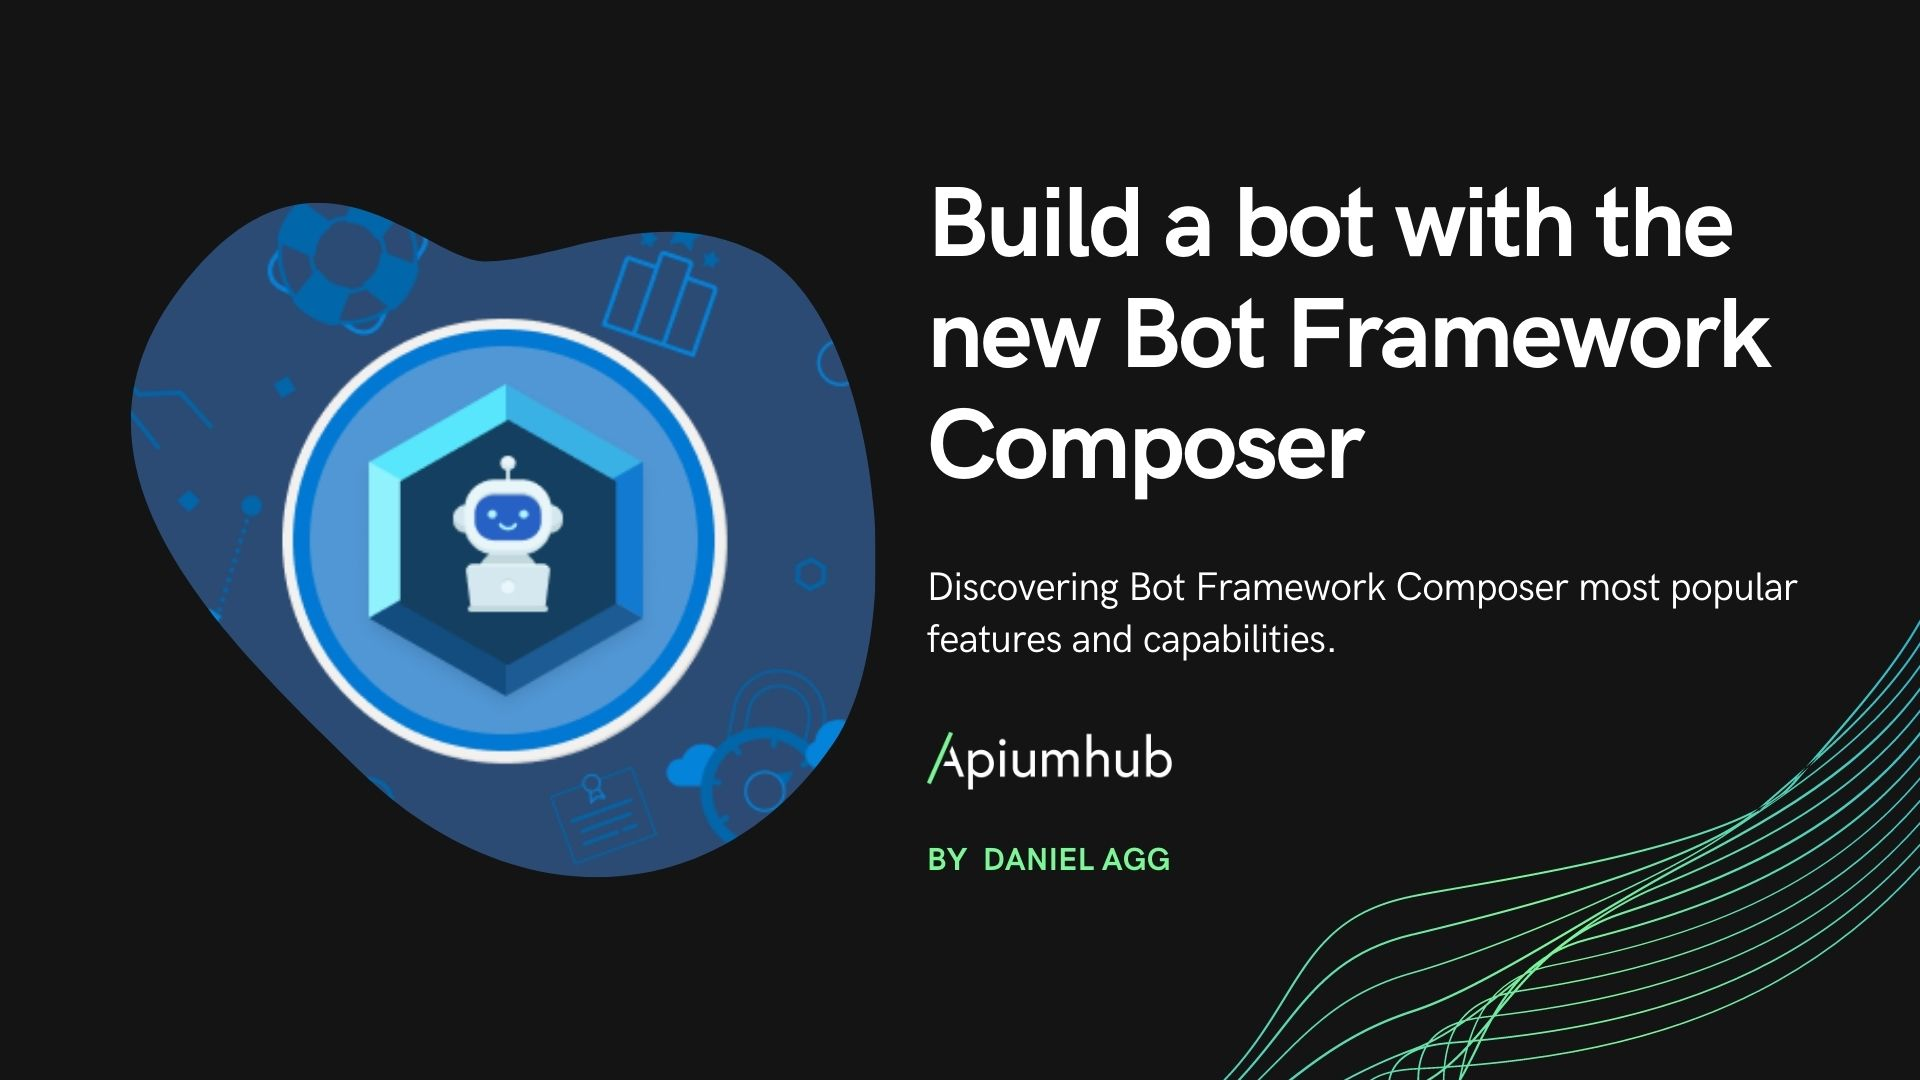 Build a bot with the new Bot Framework Composer